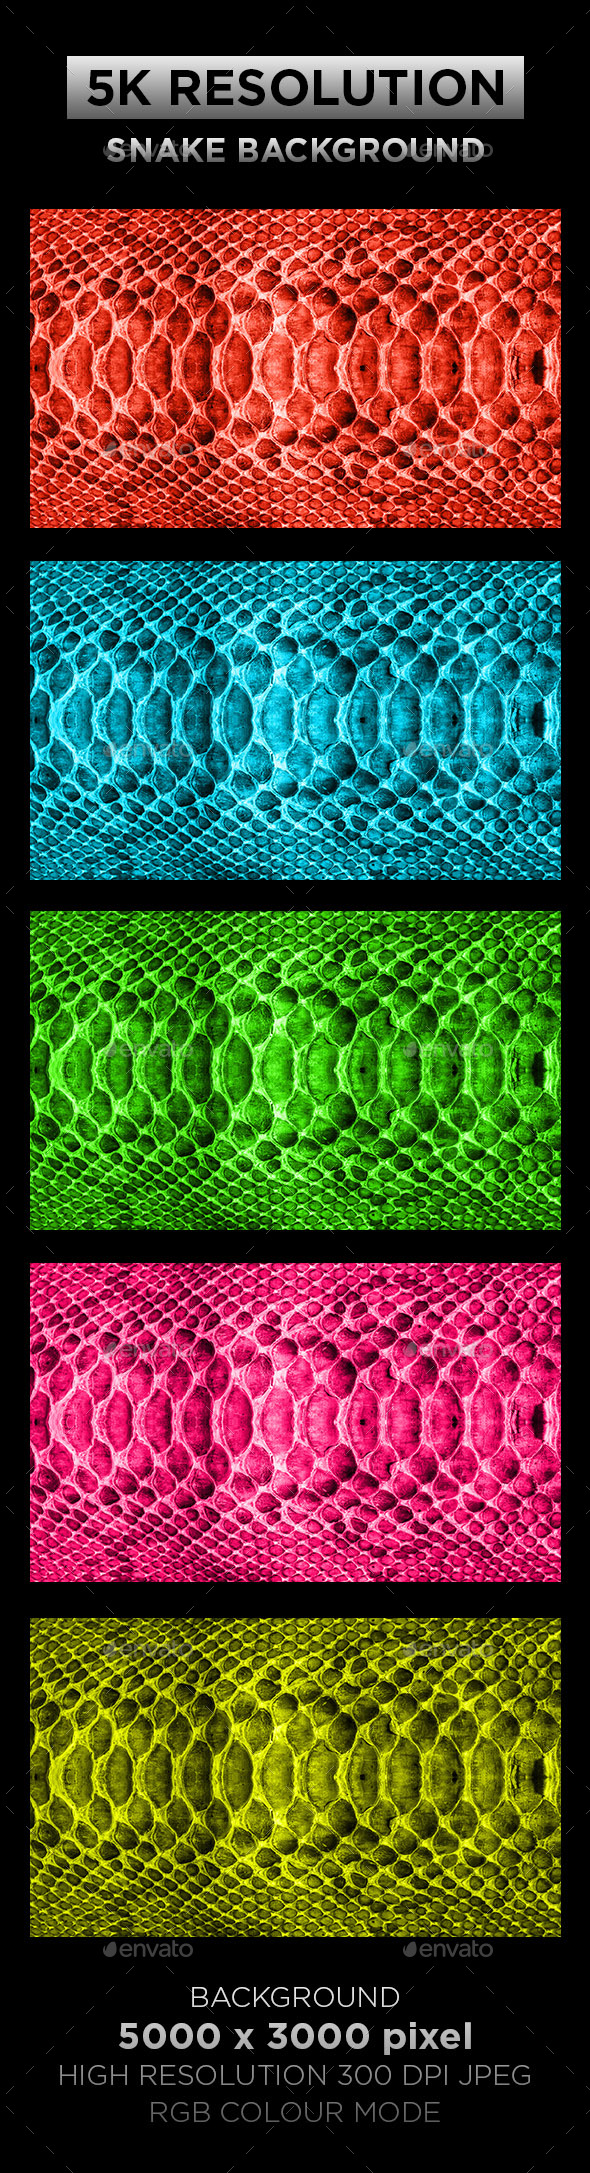 Snake Texture Background 001